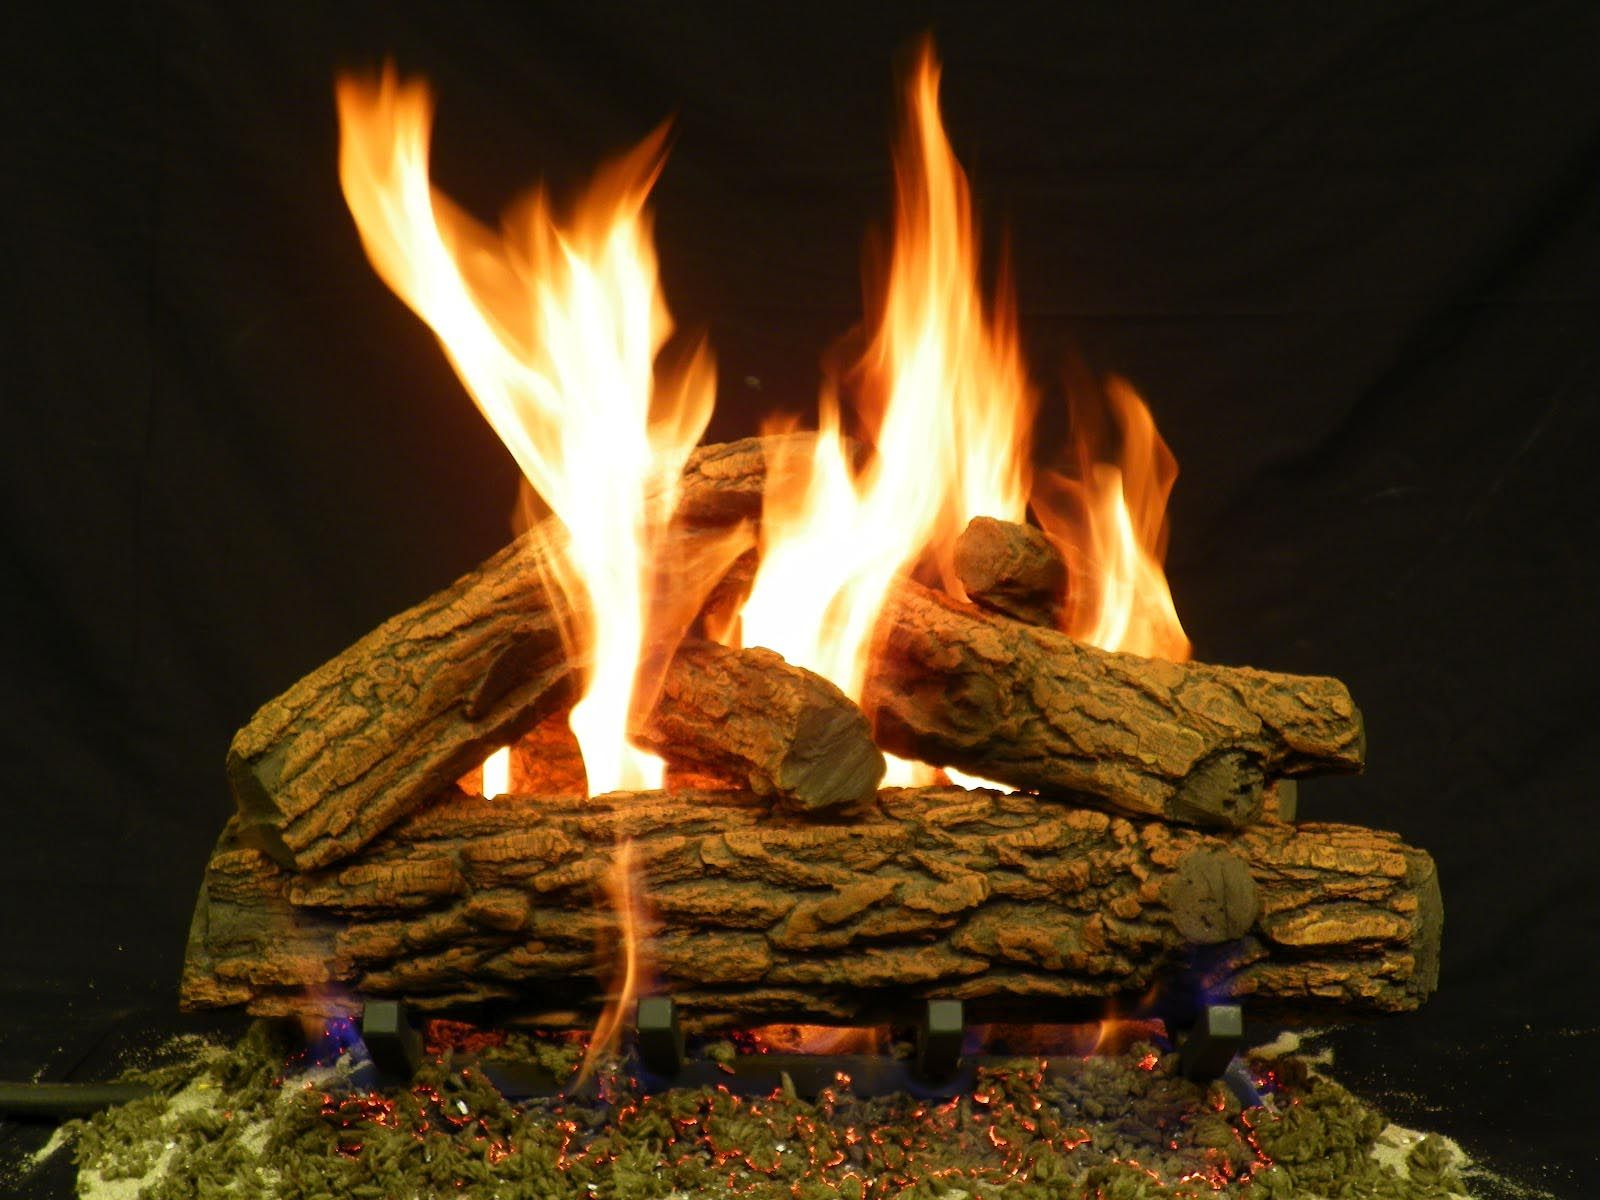 Fake Logs For Gas Fireplace Fireplace Pinterest Gas Fireplace Logs And Fake Fireplace Logs